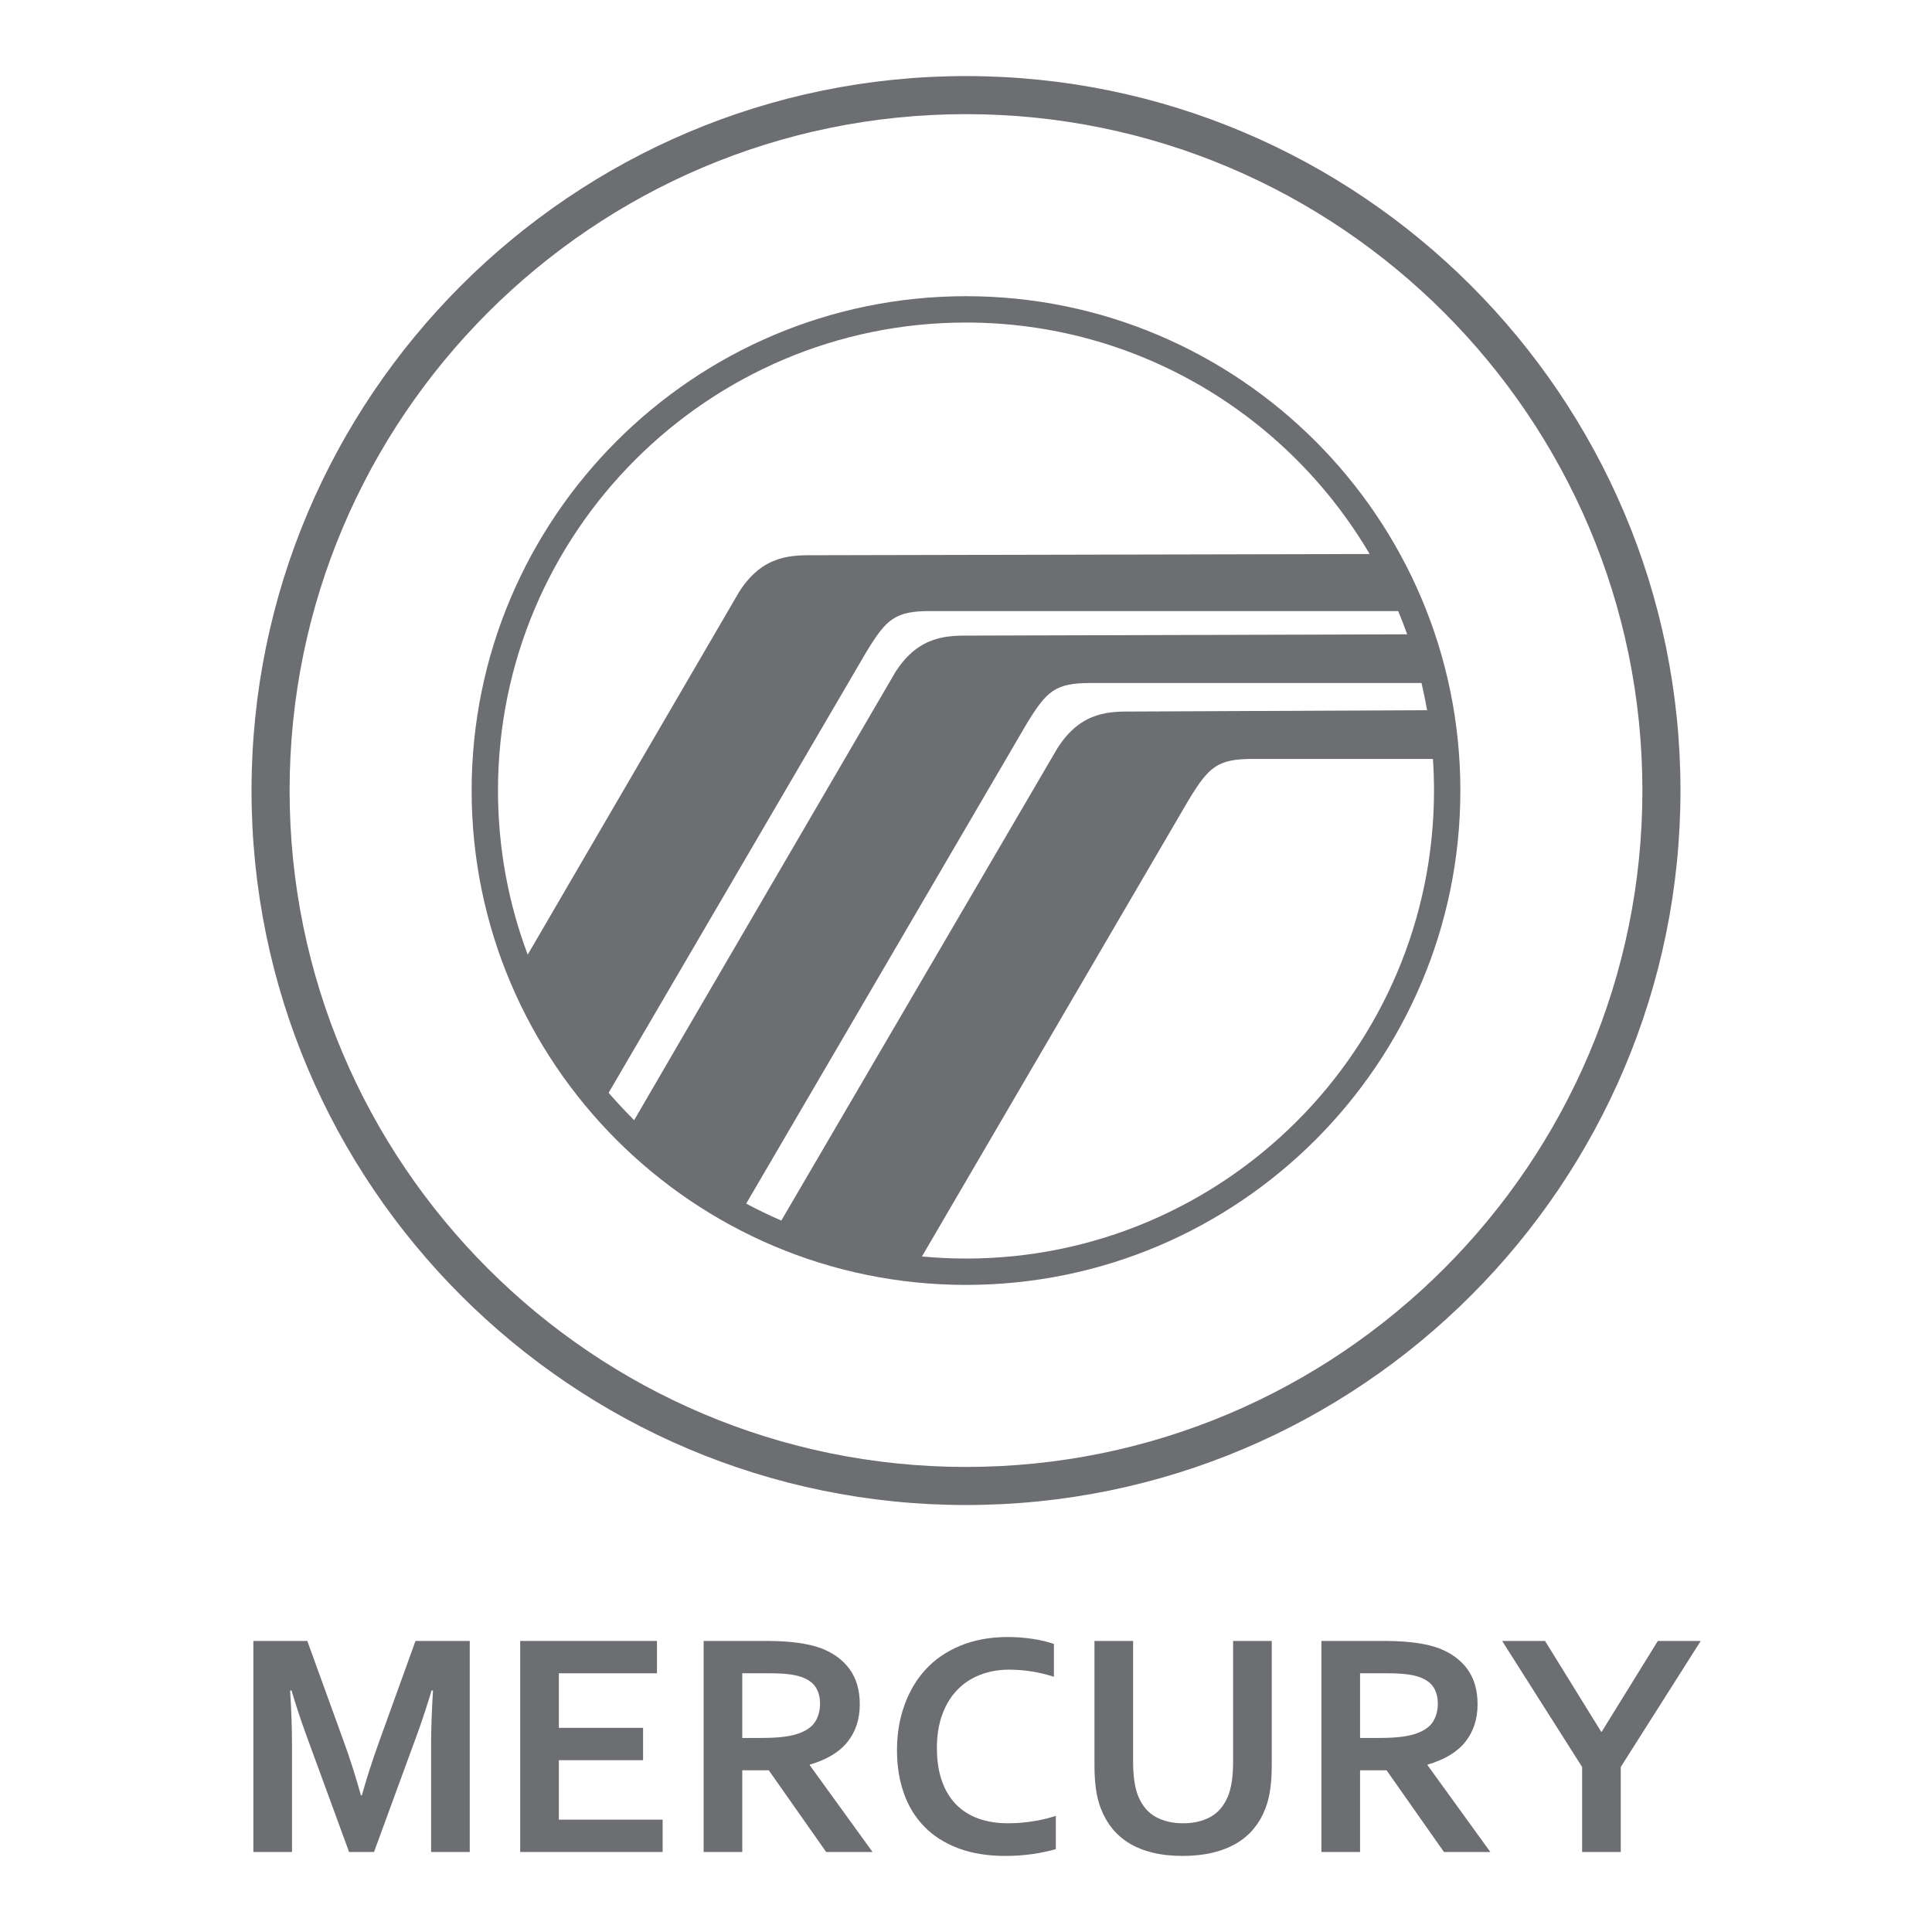 Saturn car logo png. Mercury hd meaning information